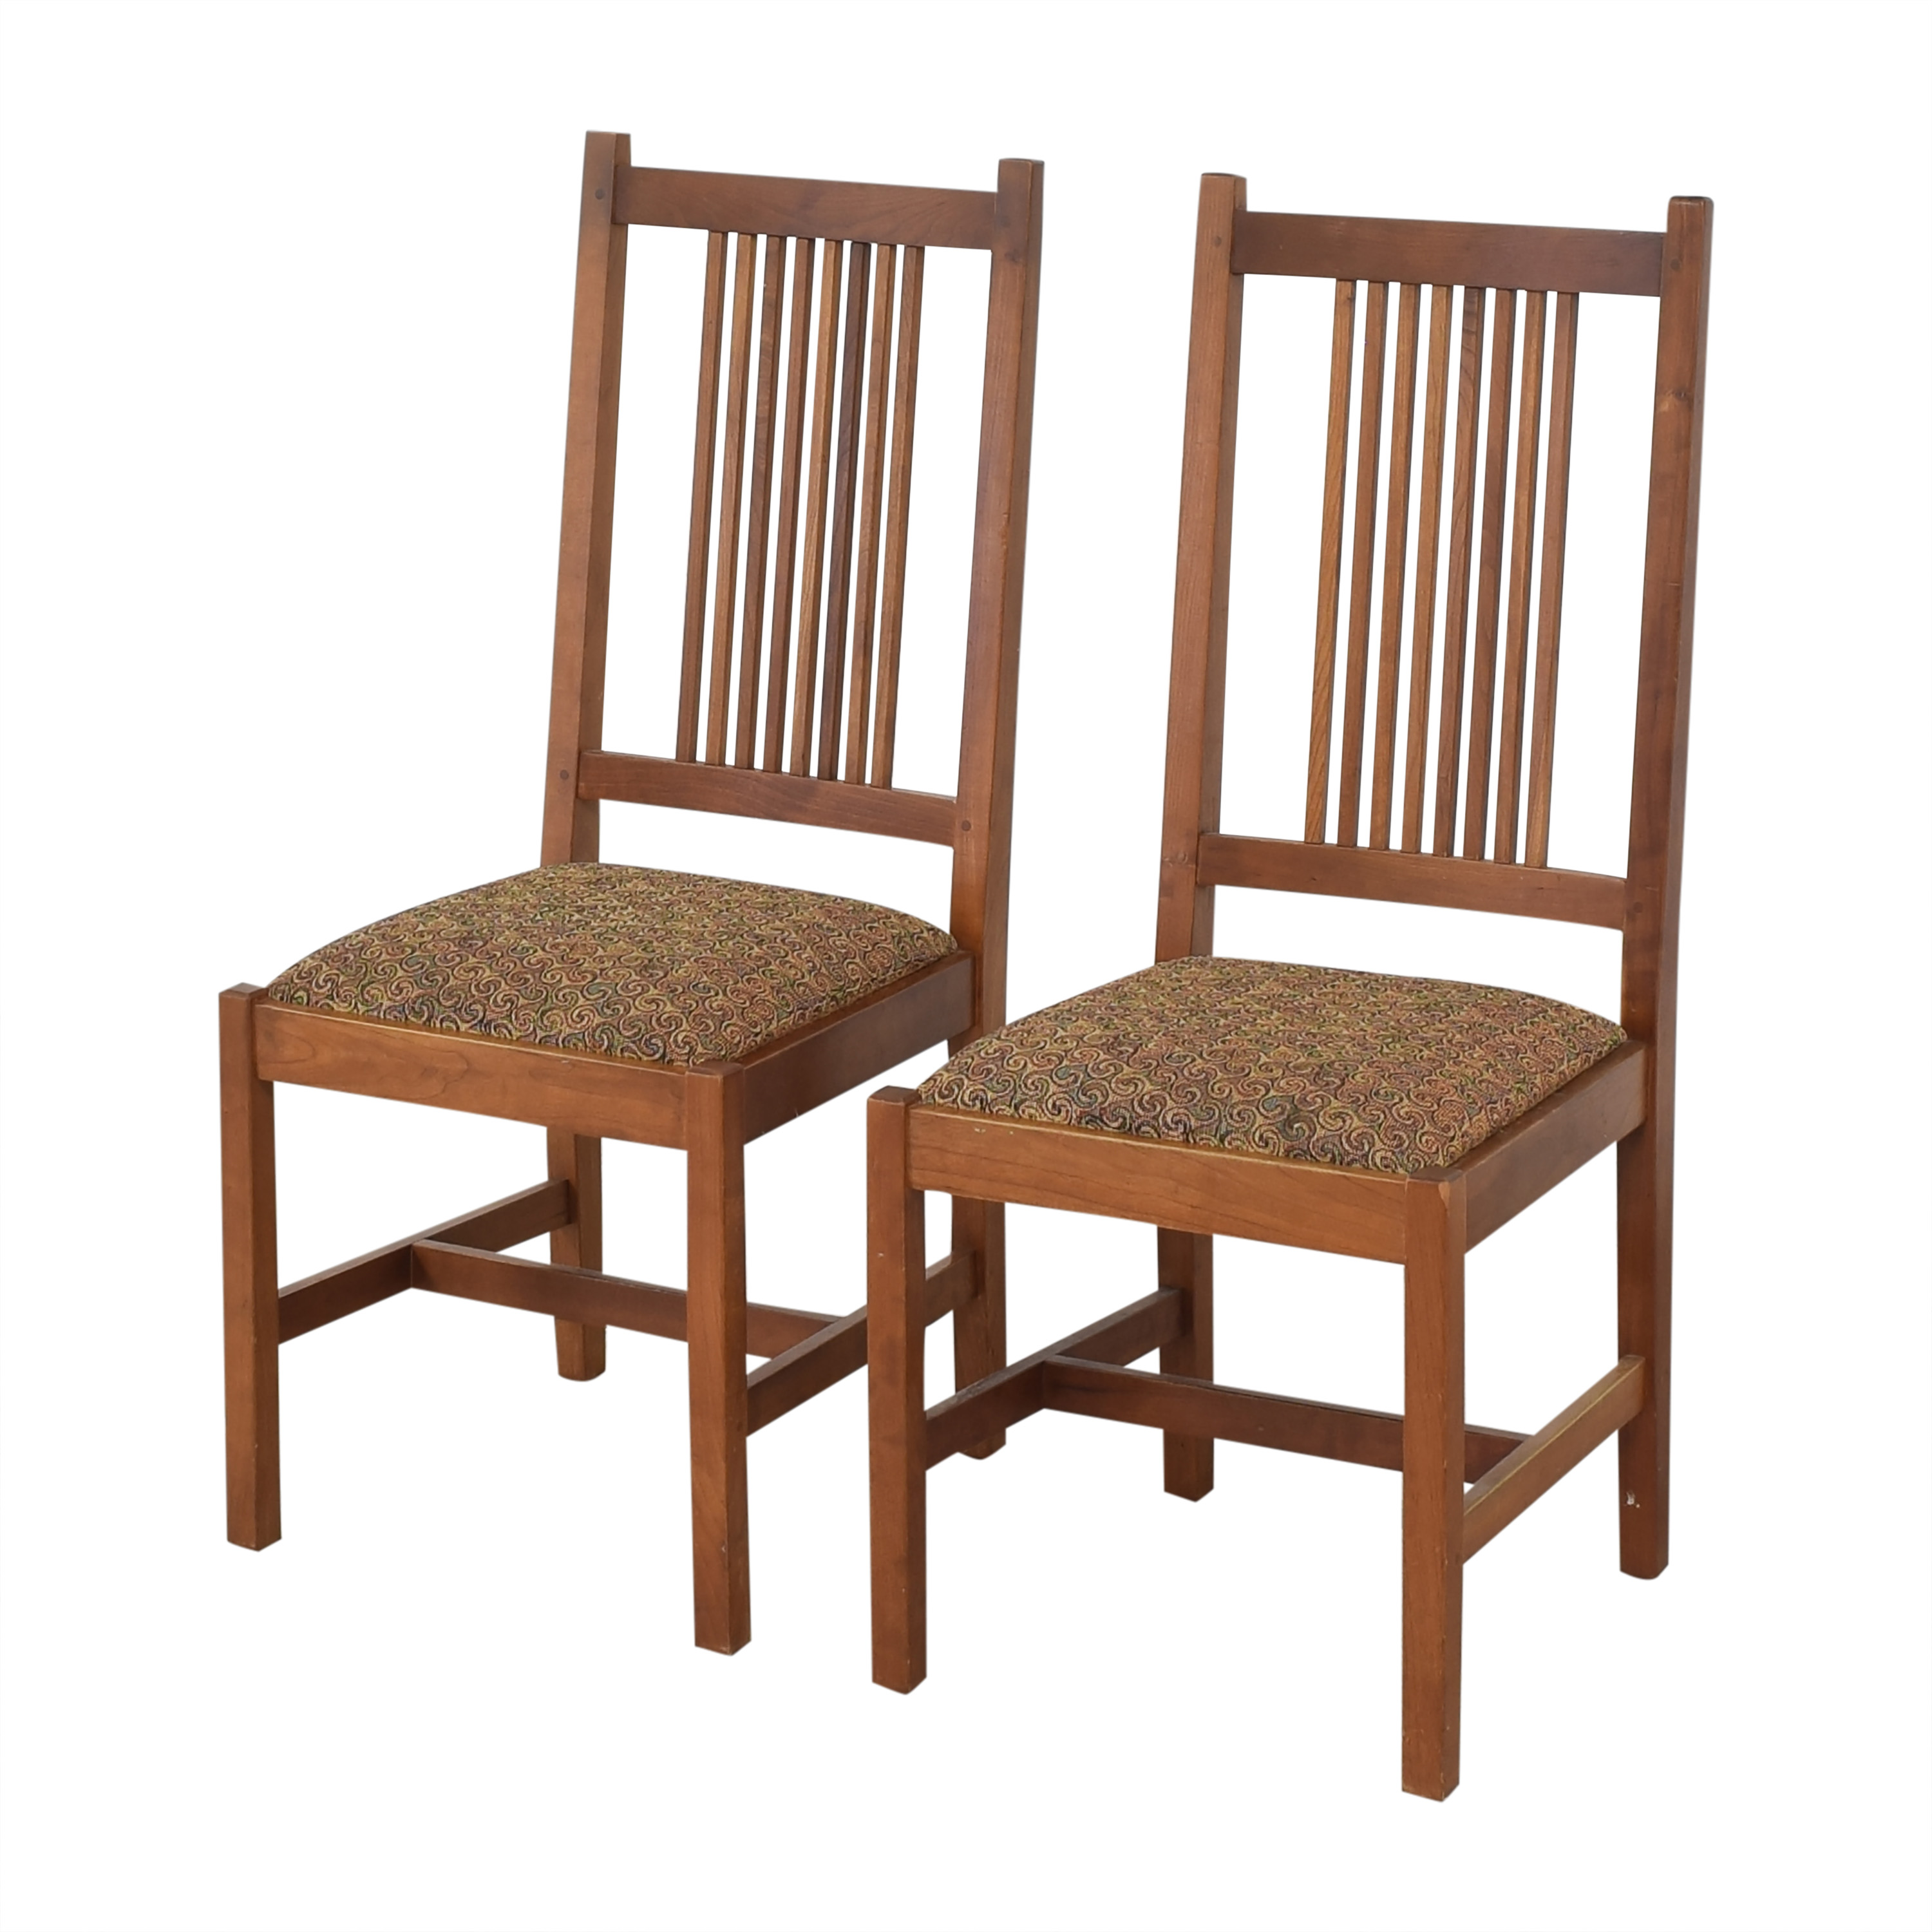 Stickley Furniture Stickley Furniture Shaker Dining Side Chairs price